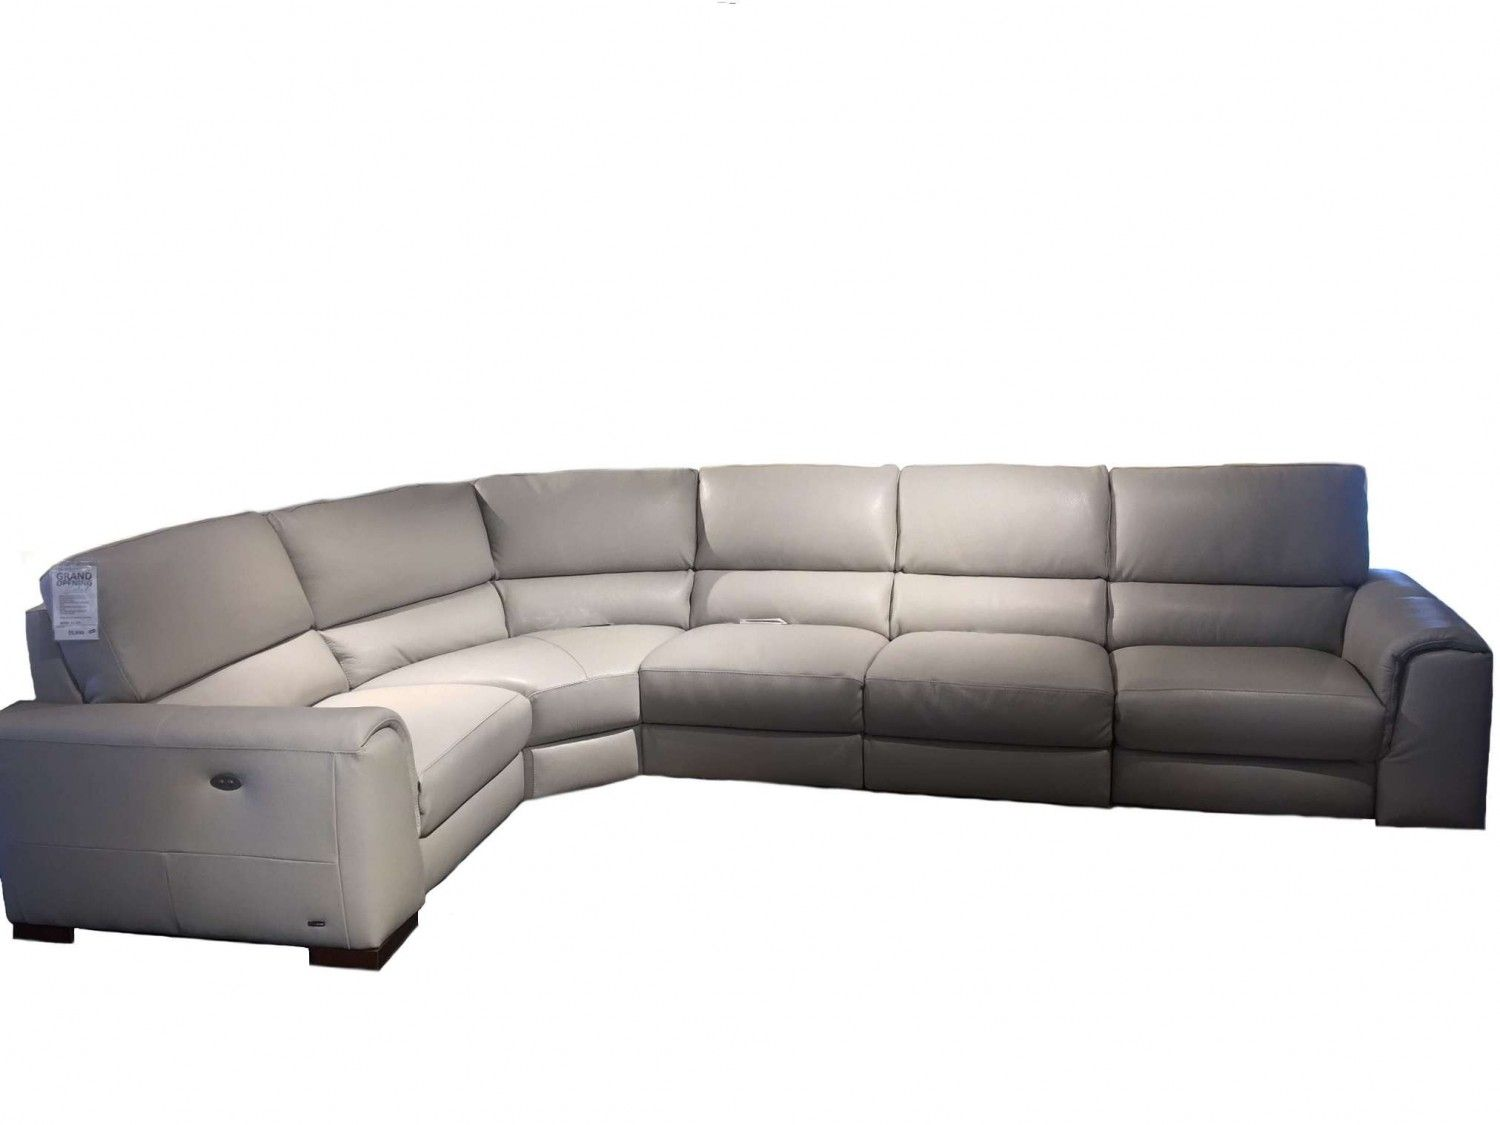 editions room furniture product sectionals sectional natuzzi living metropolitan